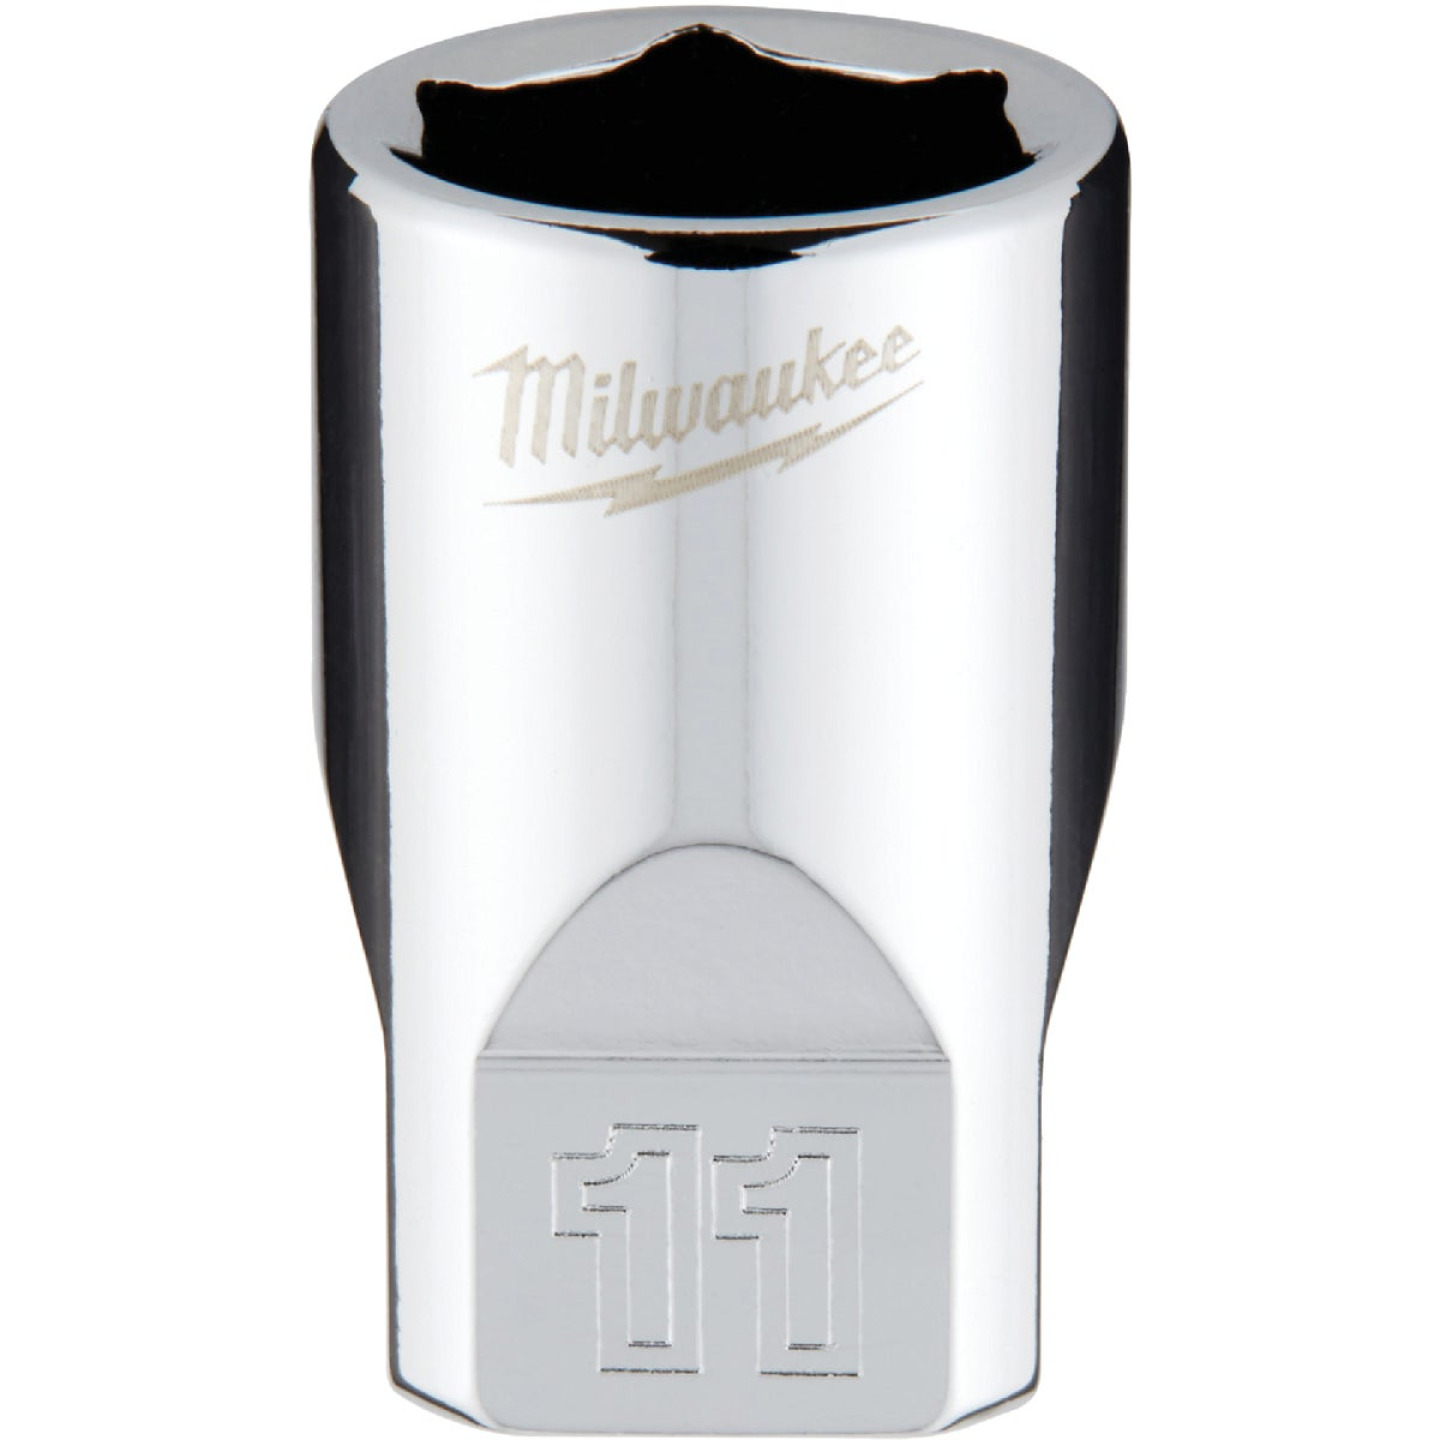 Milwaukee 1/4 In. Drive 11 mm 6-Point Shallow Metric Socket with FOUR FLAT Sides Image 1